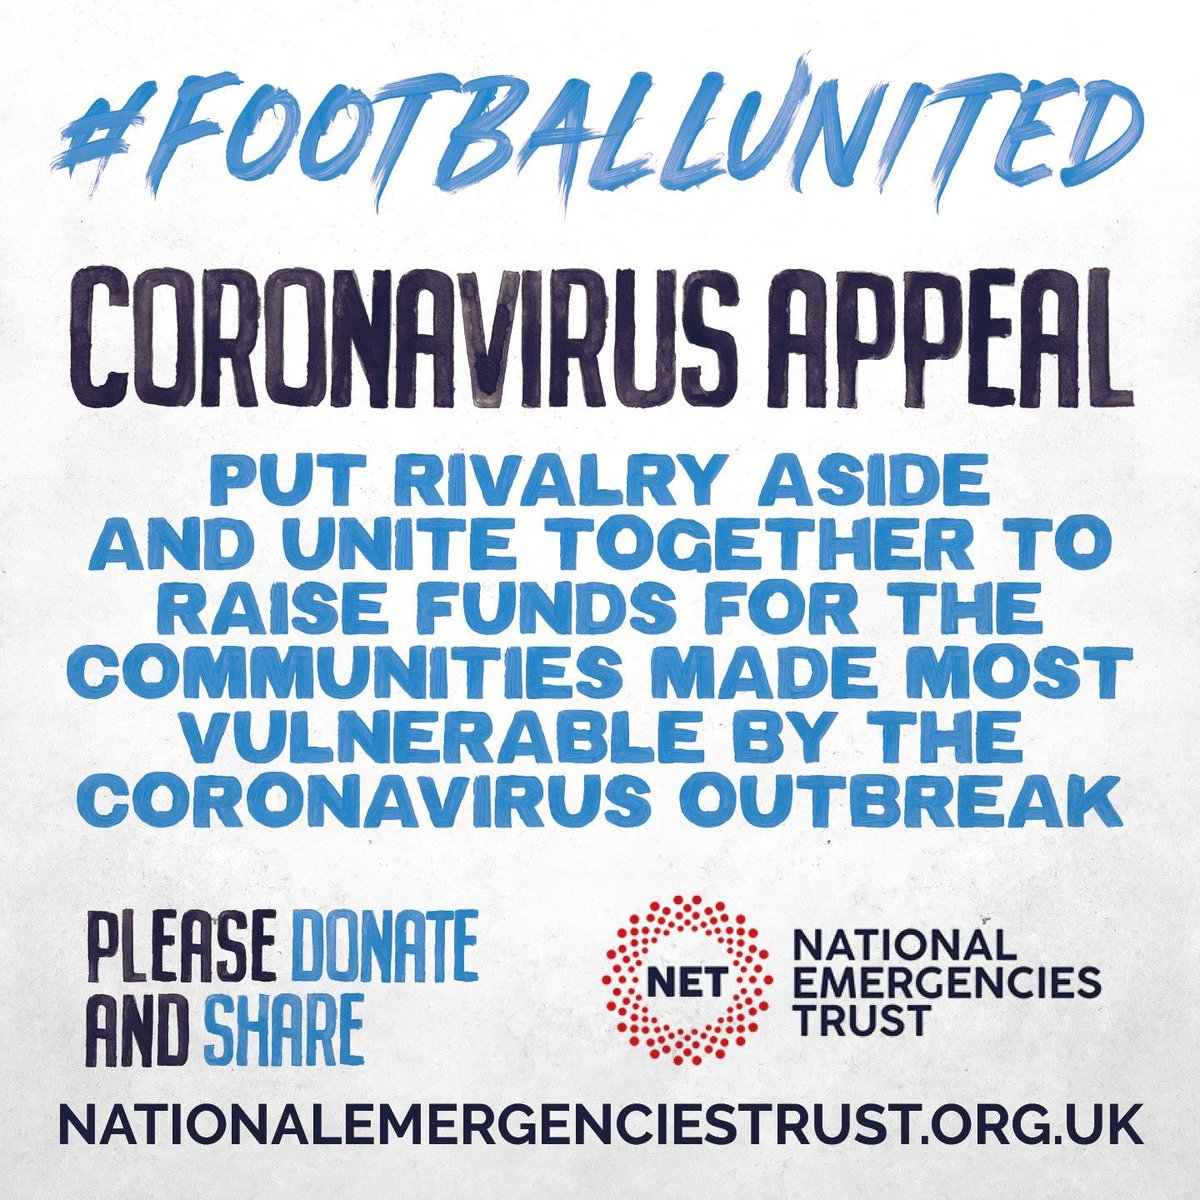 In a time of a crisis its more important than ever for us as society to pull together. One small thing we as football could do was to create a campaign to raise money and awareness for the @NatEmergTrust through our #FootballUnited campaign.